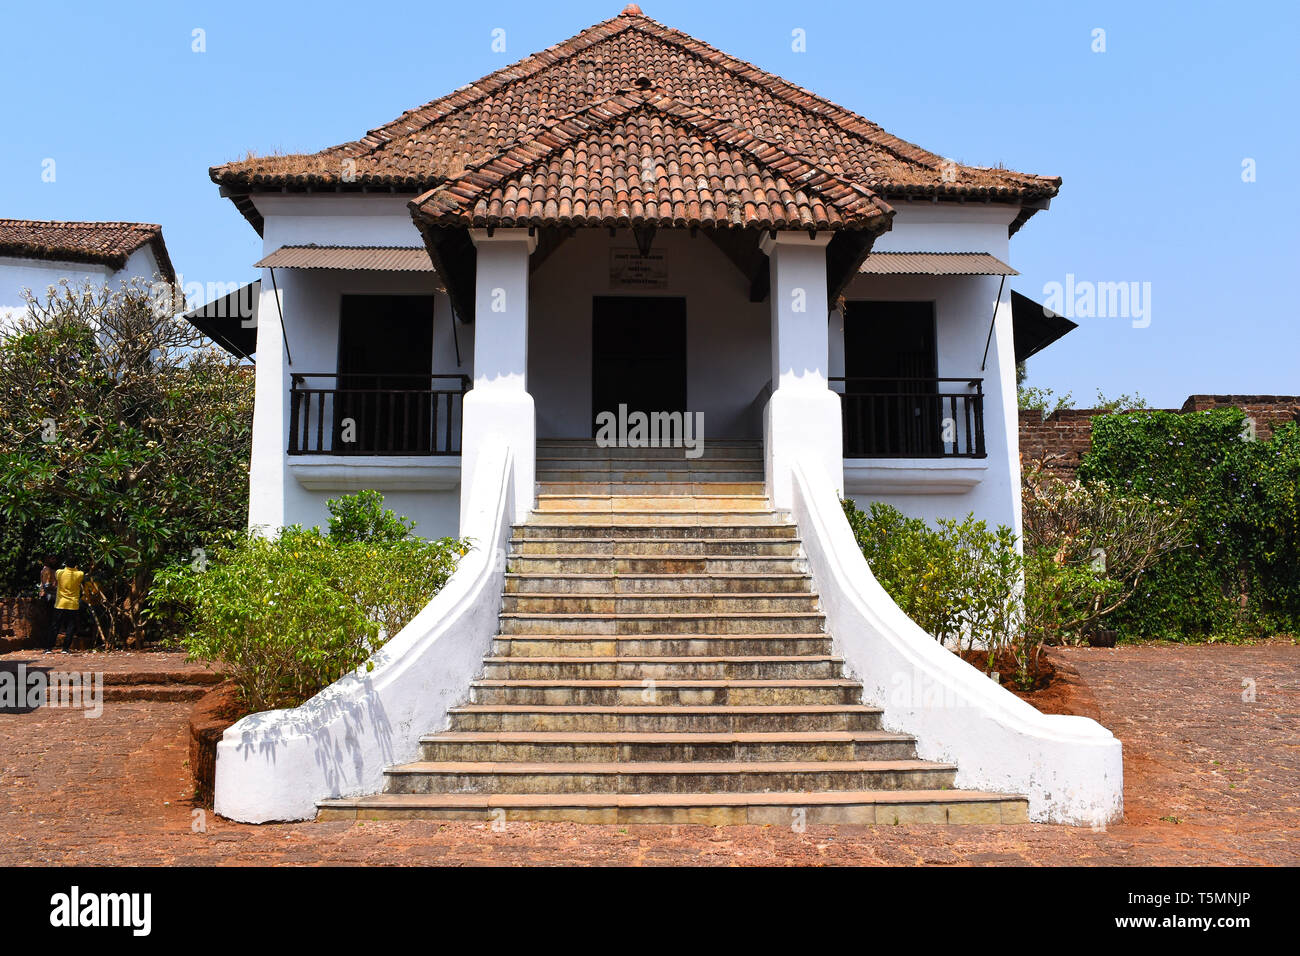 A building inside the Reis Magos Fort, Goa, India. - Stock Image